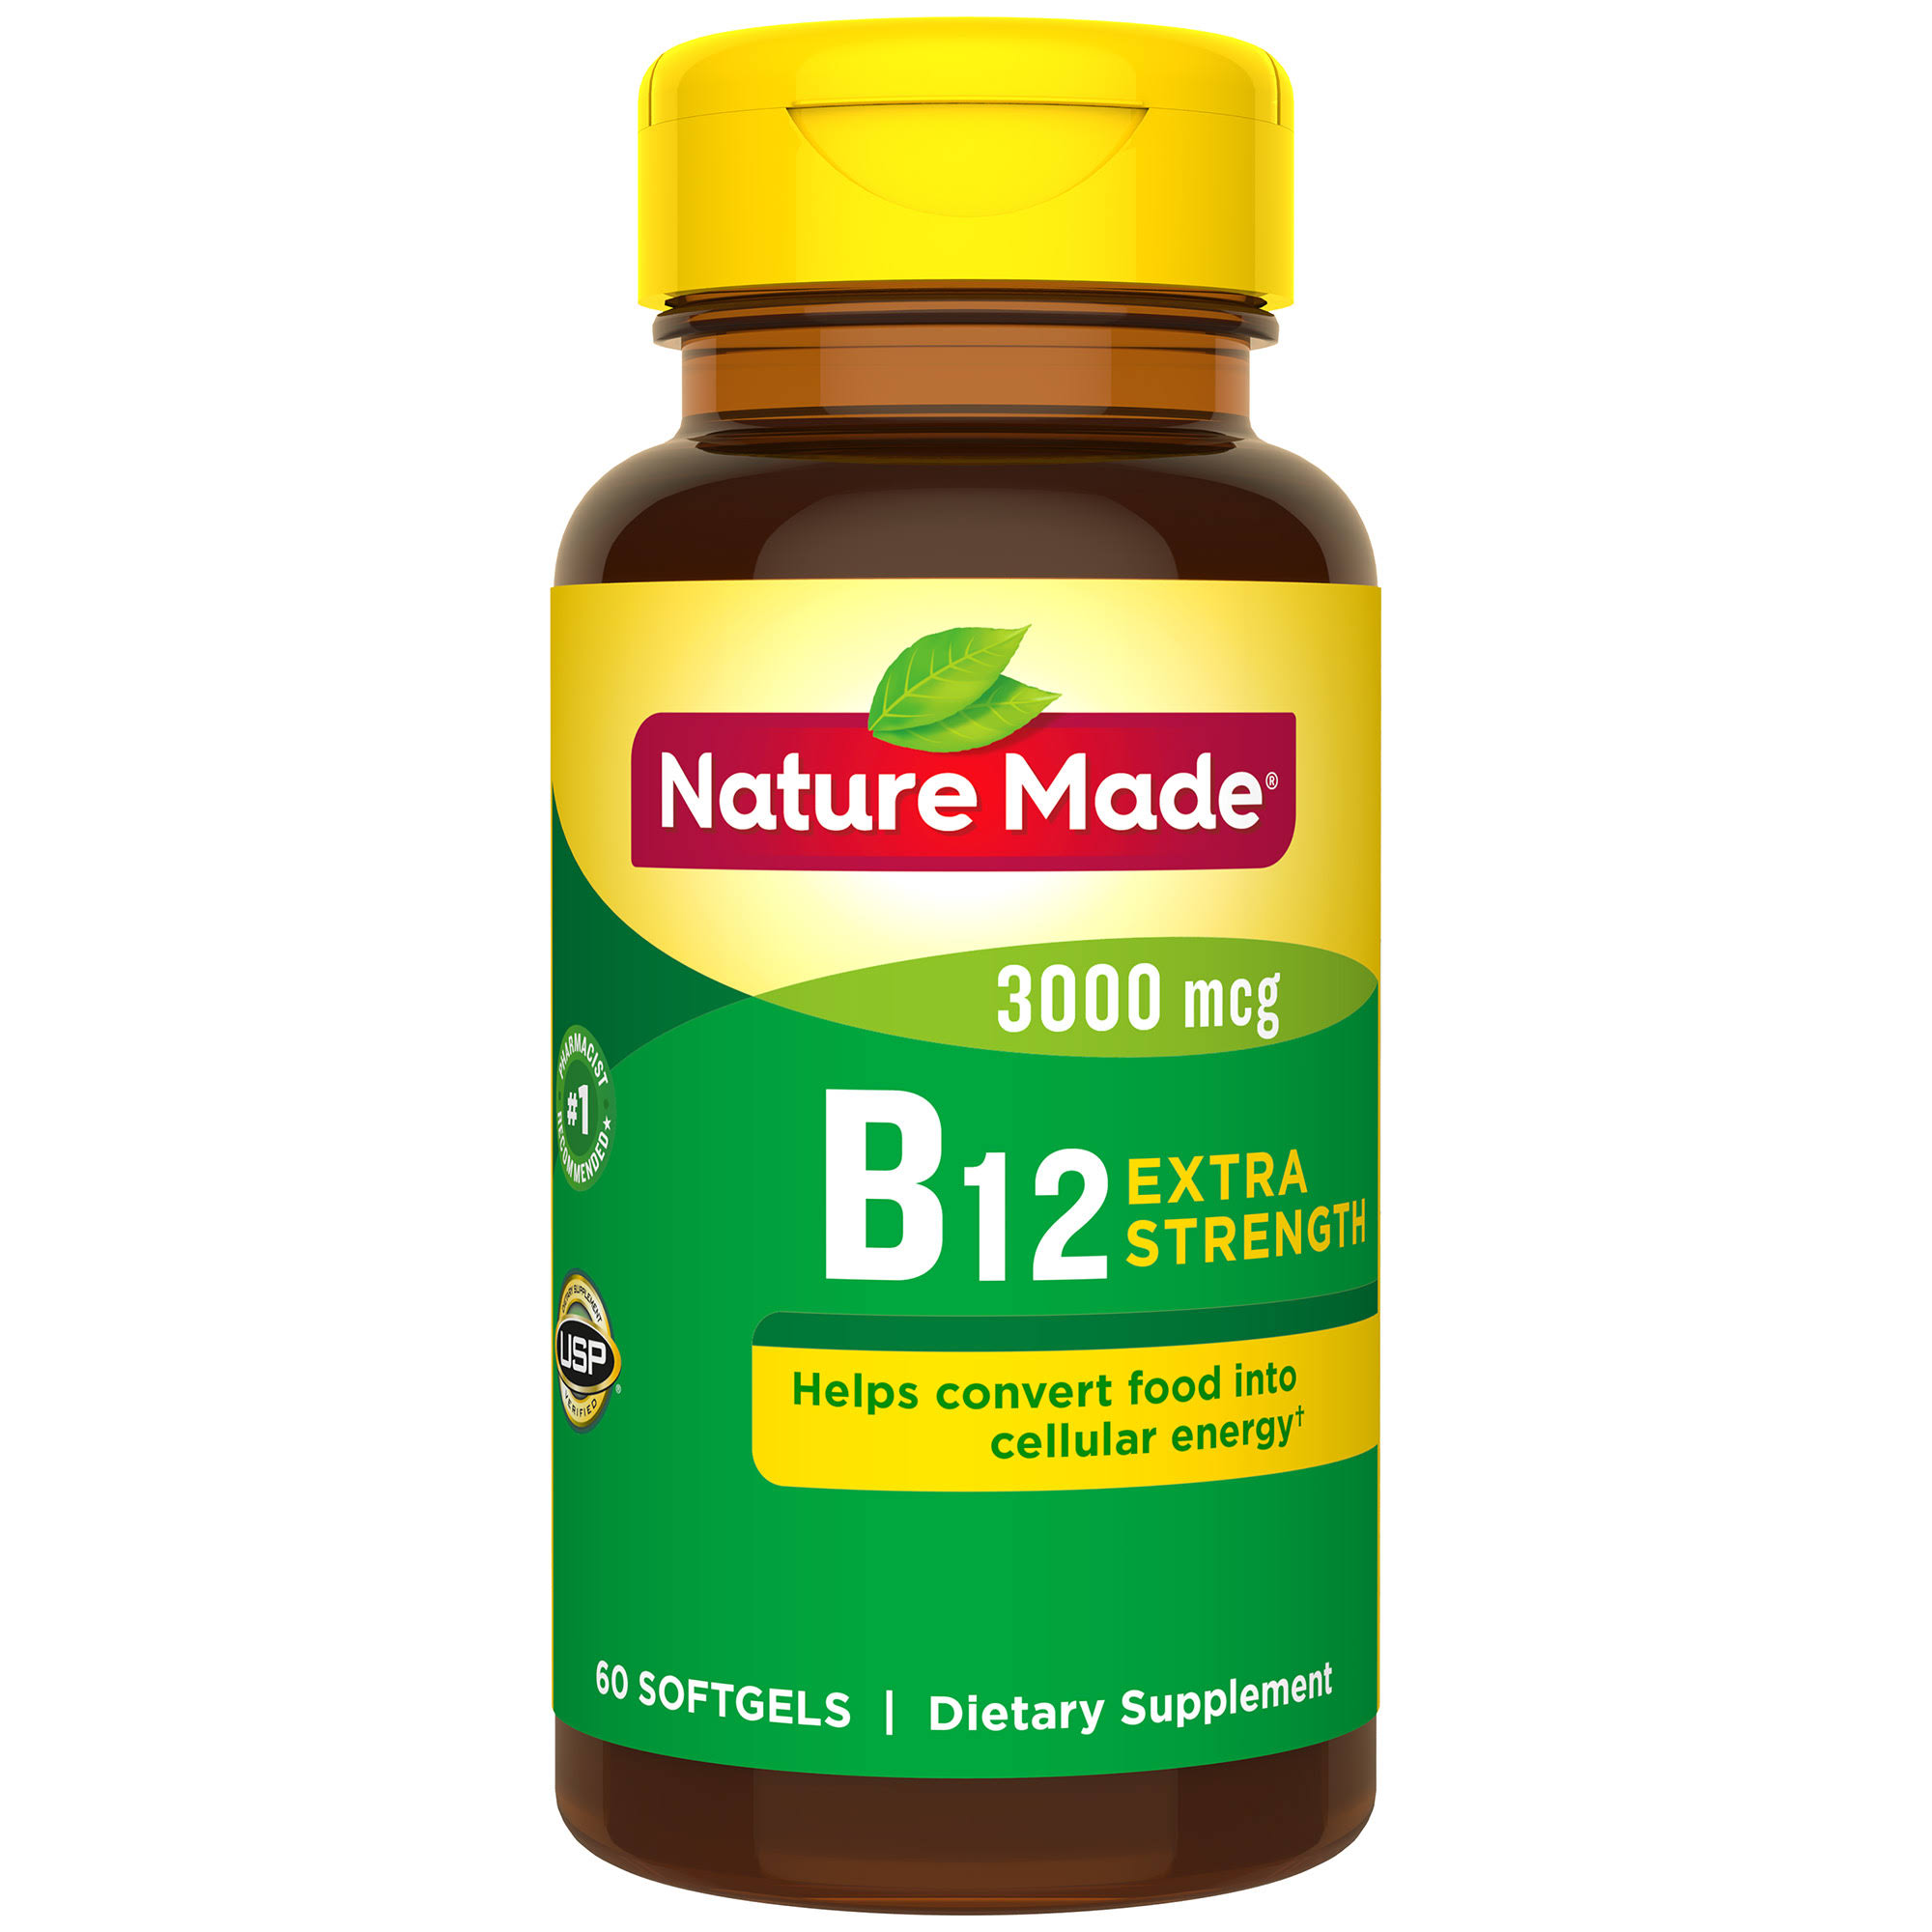 Nature Made B 12 Supplements - 60ct